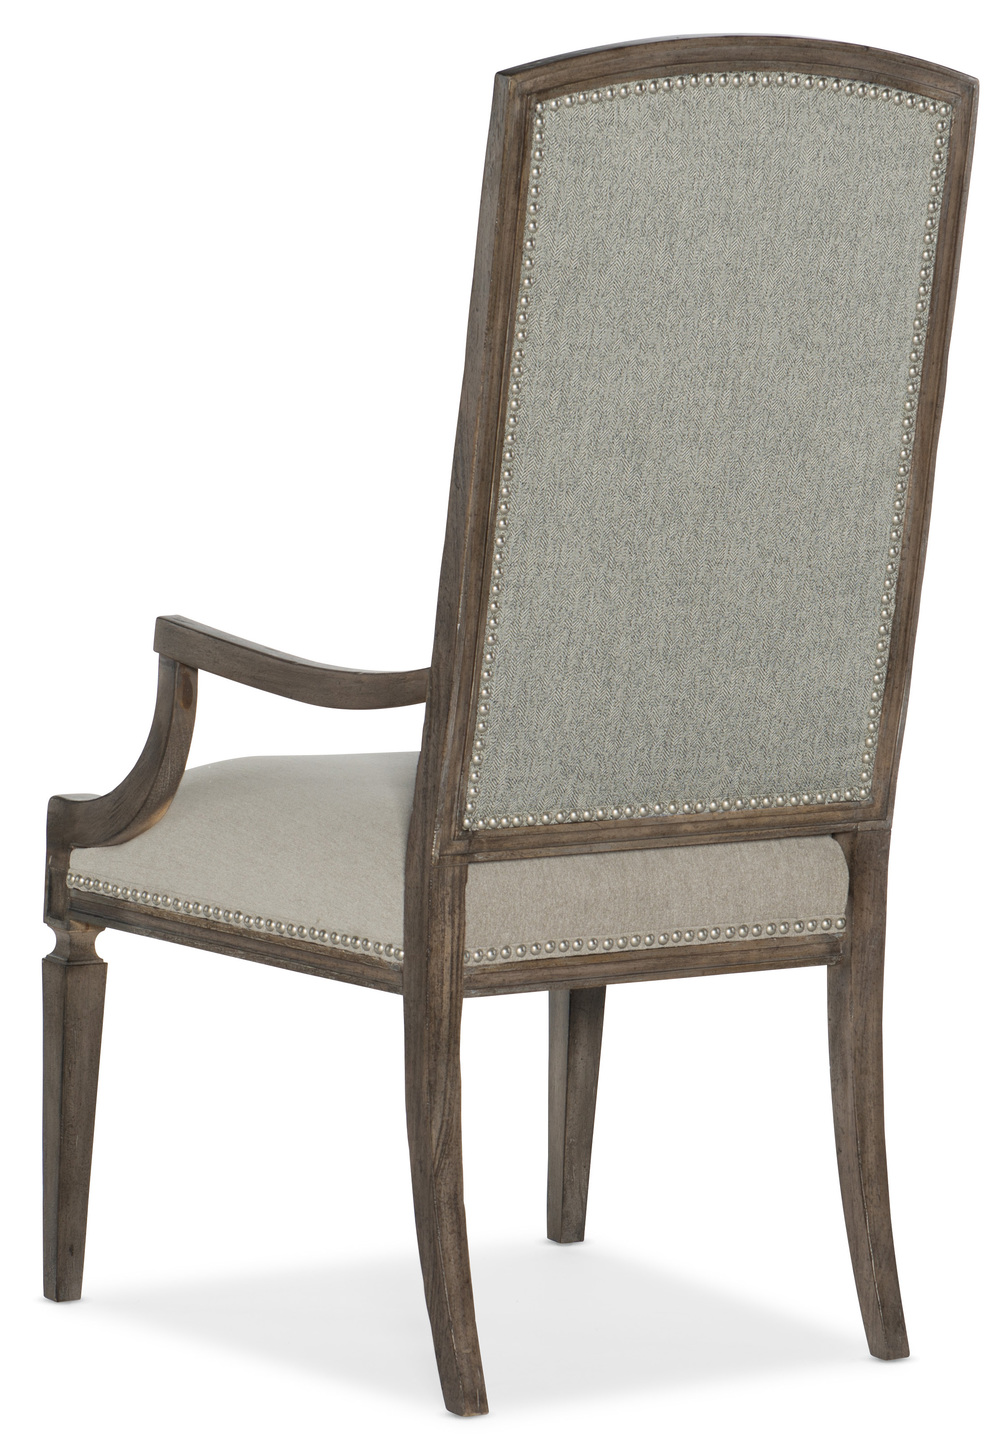 Hooker Furniture - Arched Upholstered Arm Chair